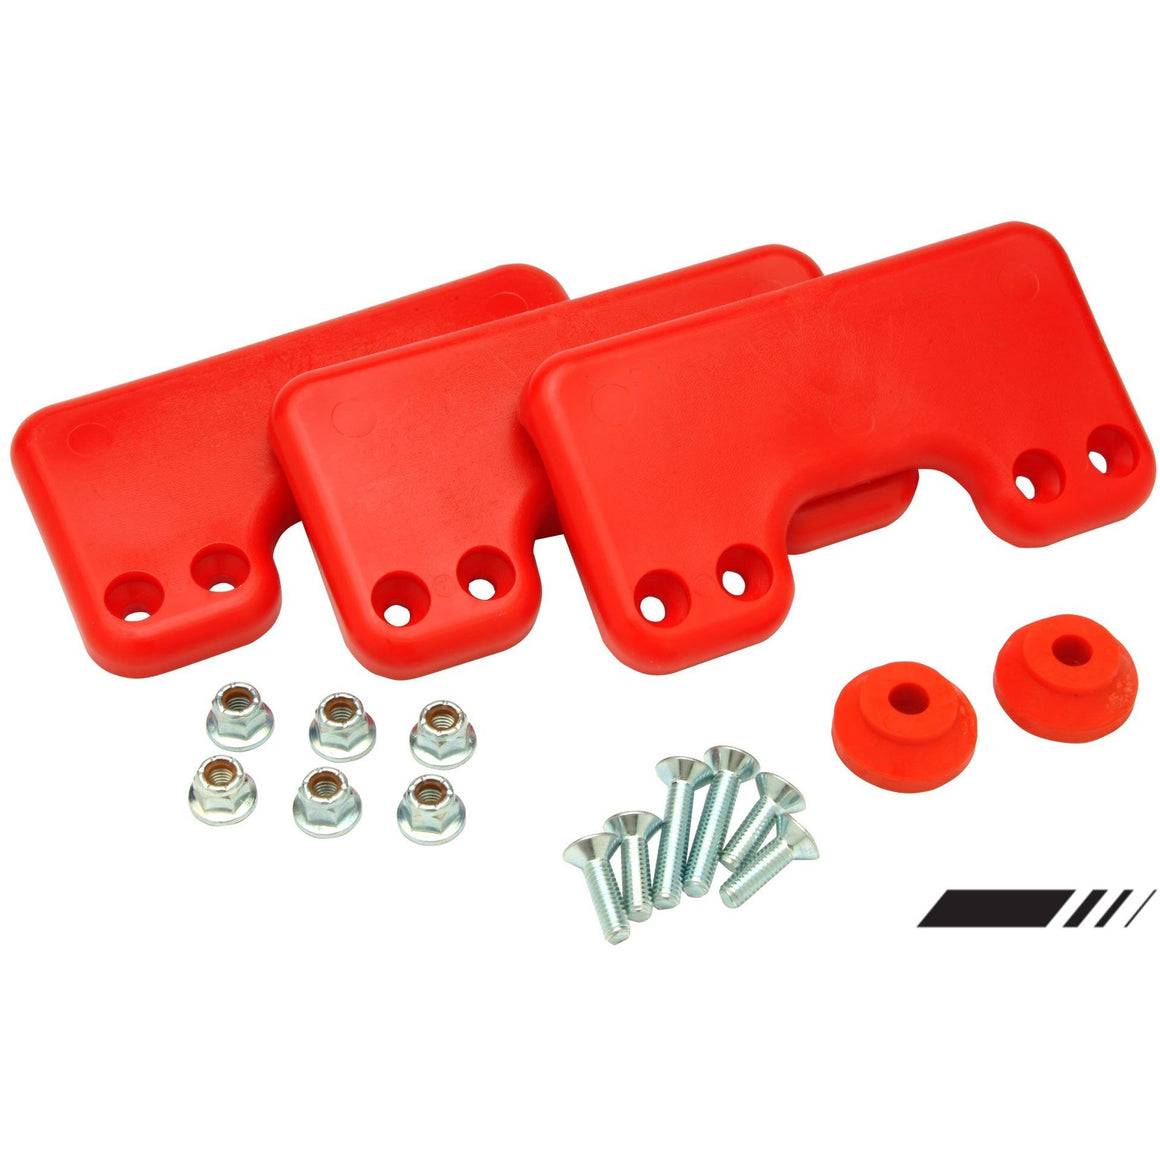 Compkart Chassis Frame Protector / Chassis Sliders